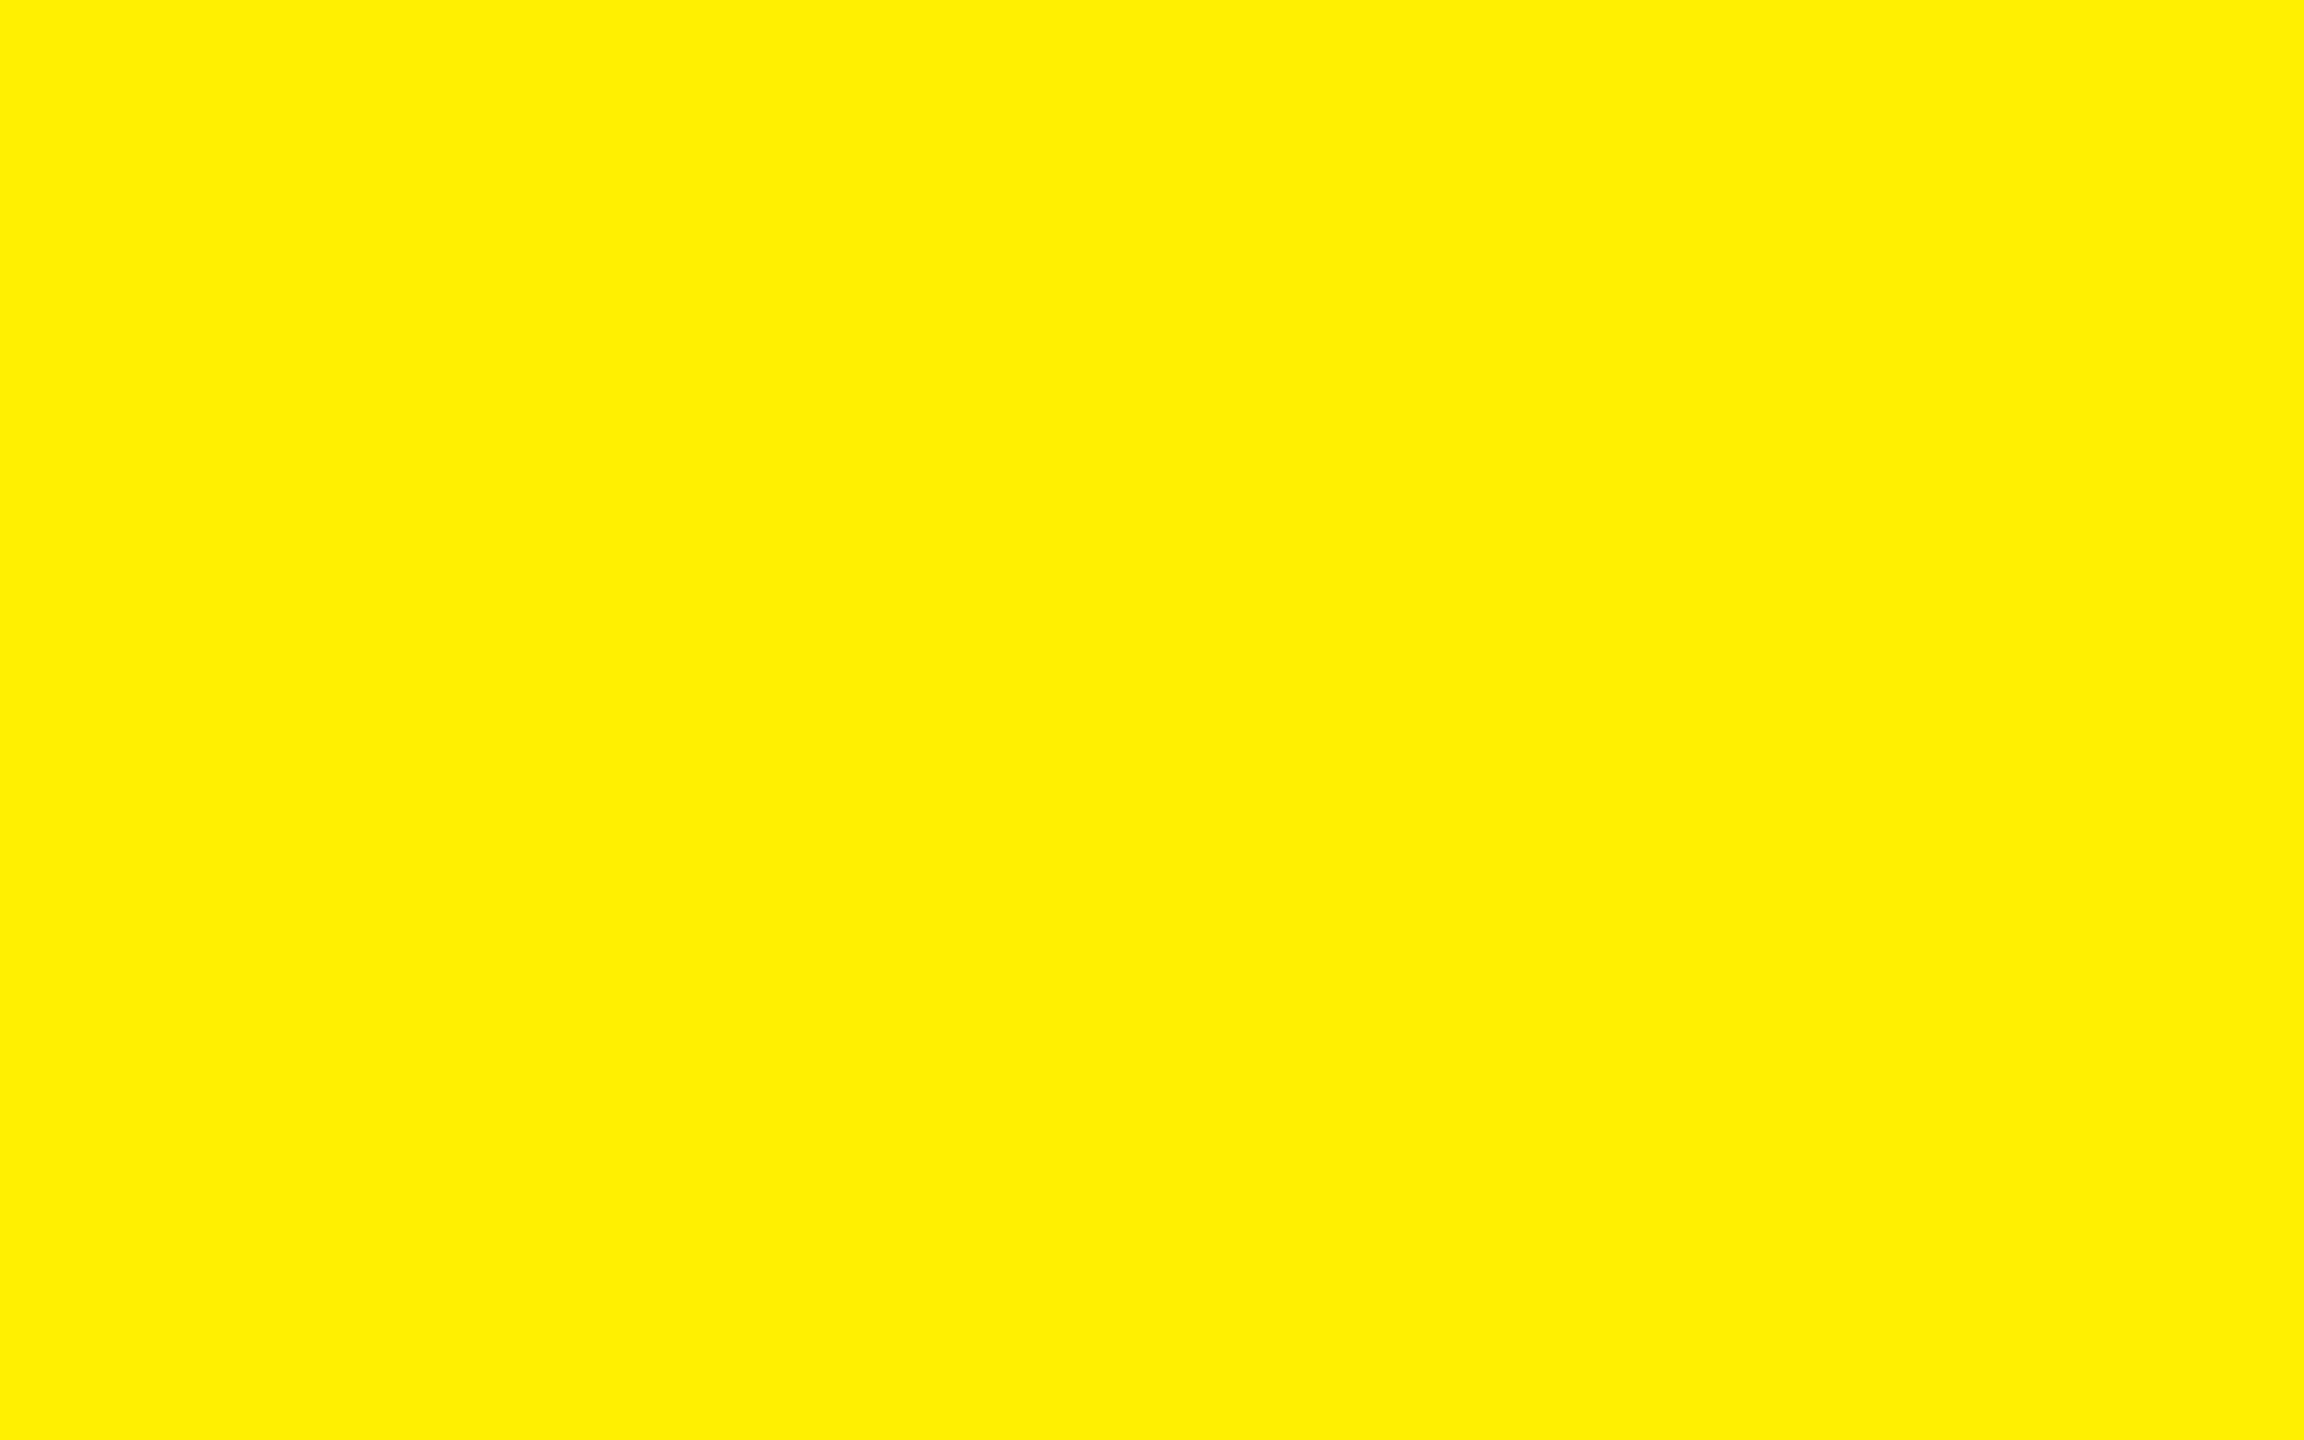 2304x1440 Canary Yellow Solid Color Background